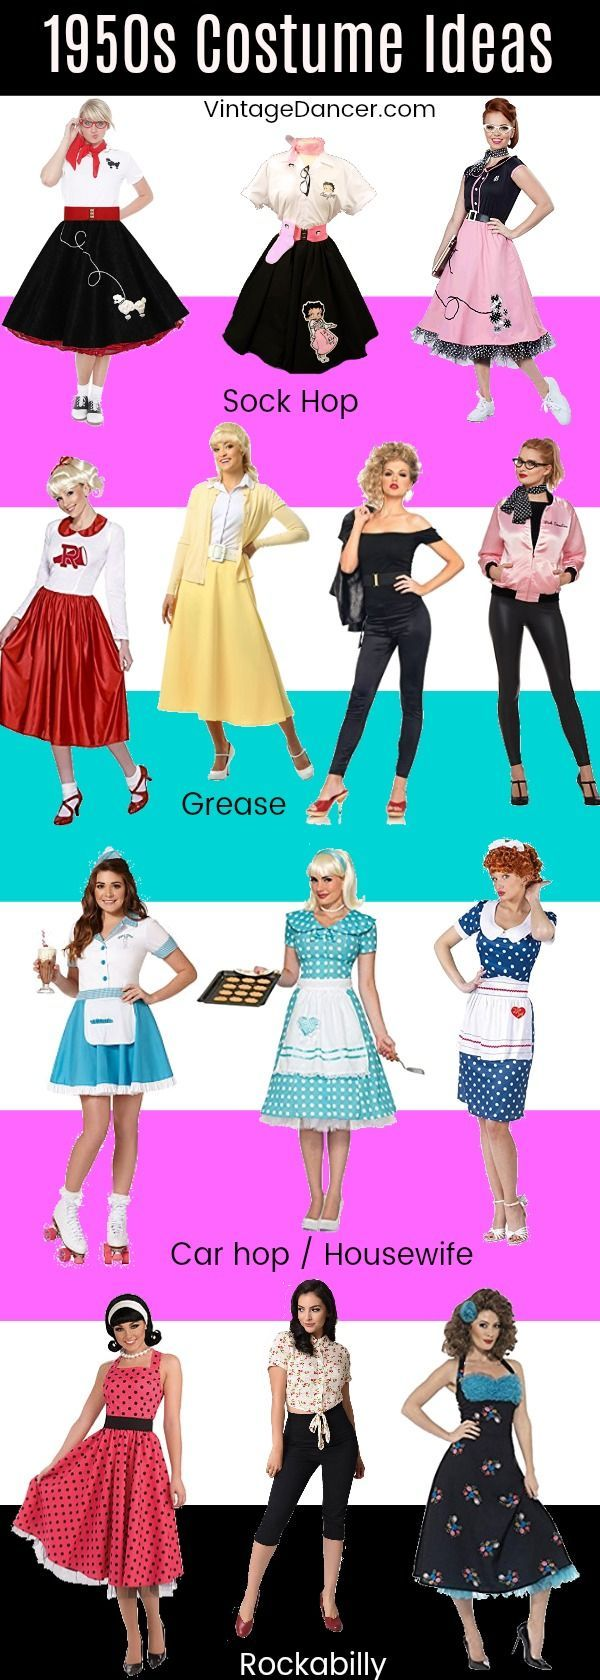 1950s Costume Ideas Sock Hop Poodle Skirts Grease Housewife Car